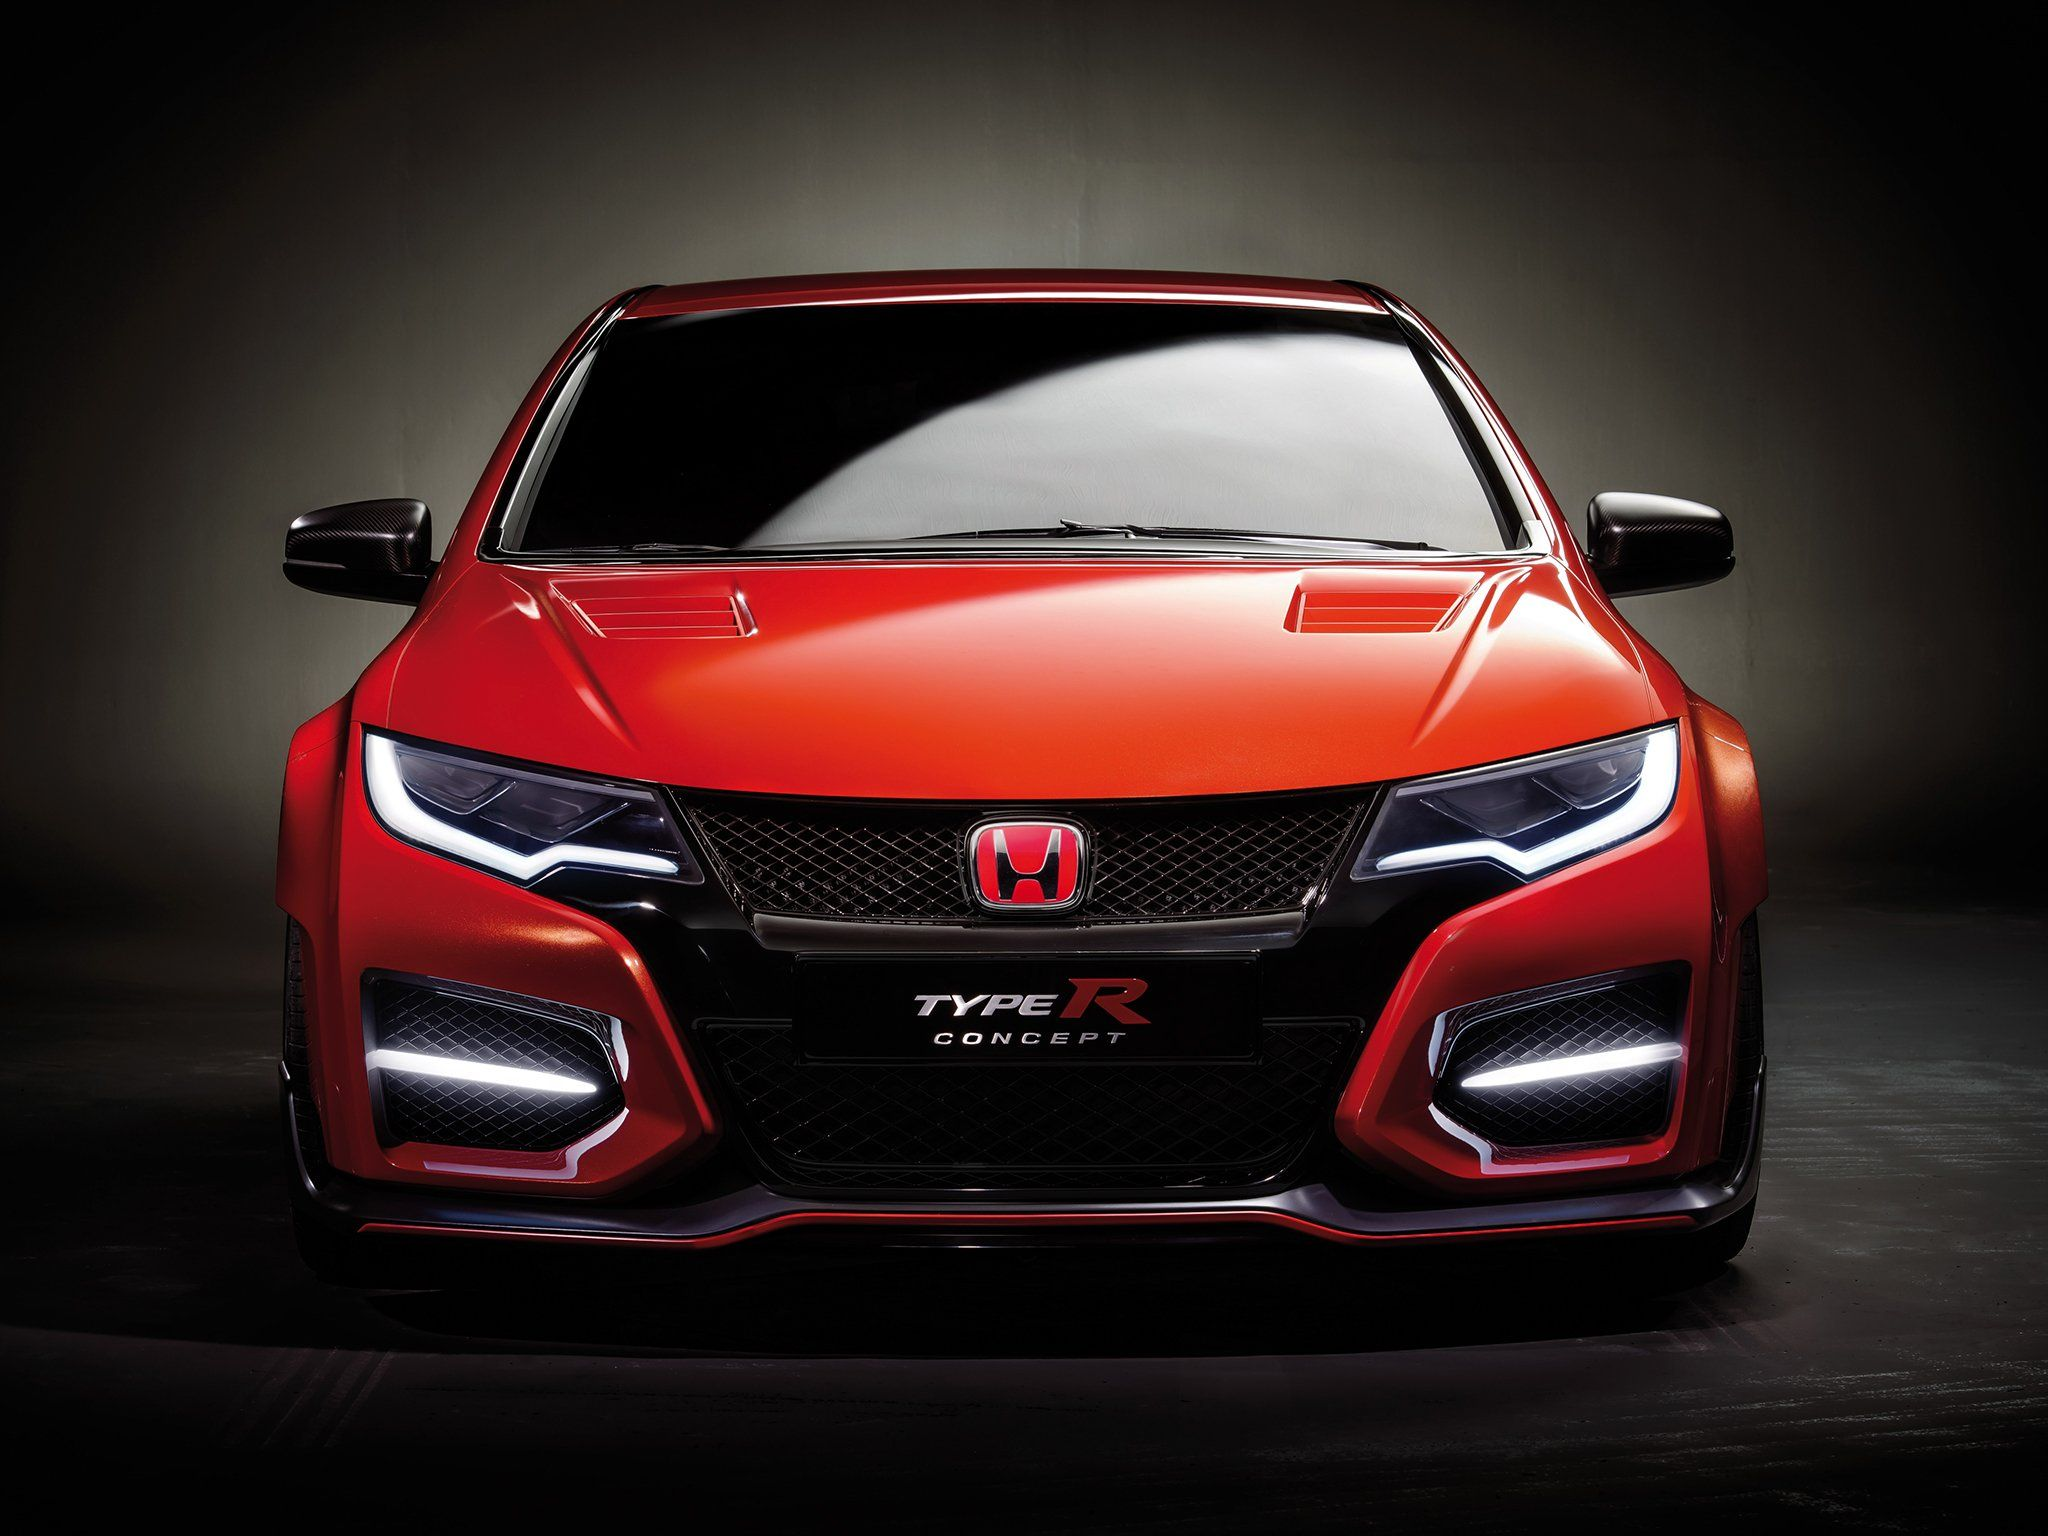 Honda Iphone Wallpaper 2015 Honda Civ Honda Civic Type R Honda